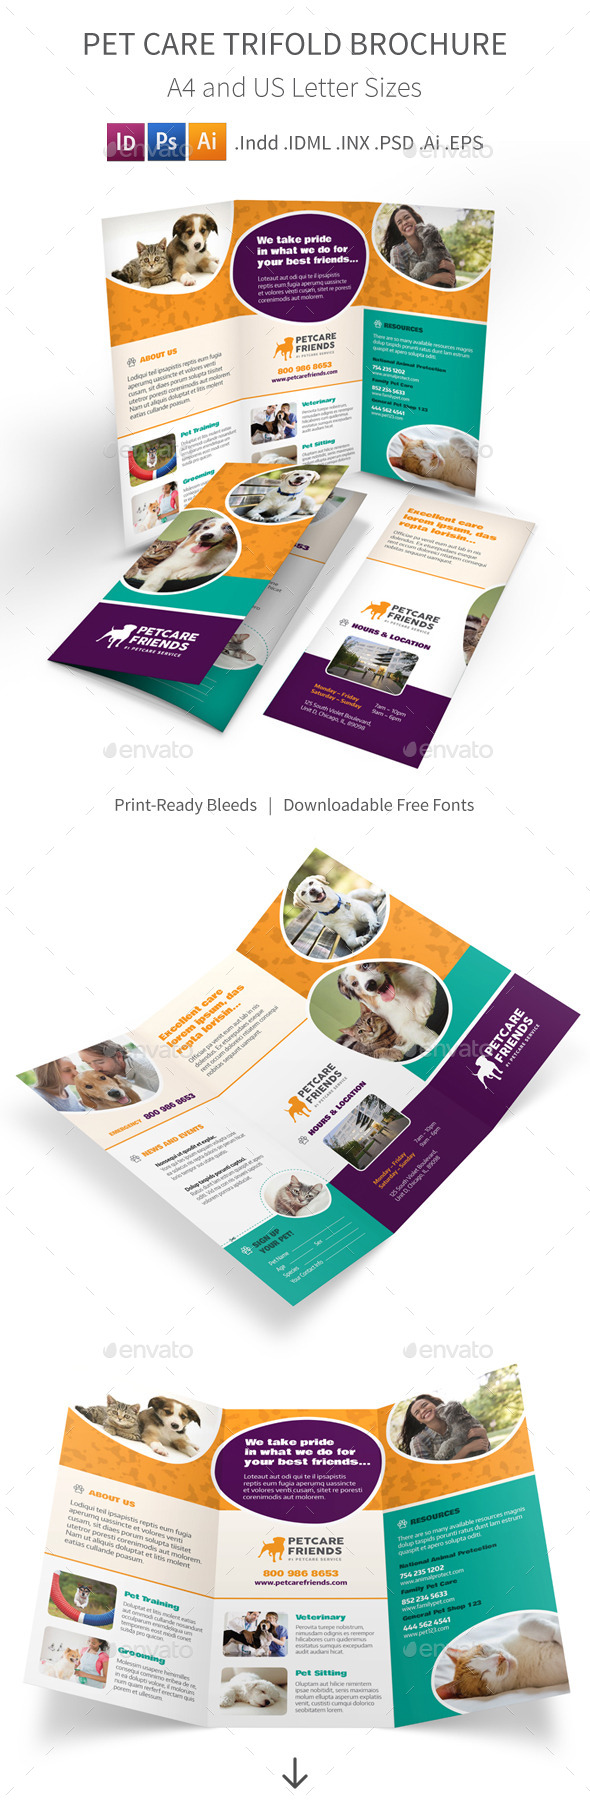 GraphicRiver Pet Care Trifold Brochure 11334344